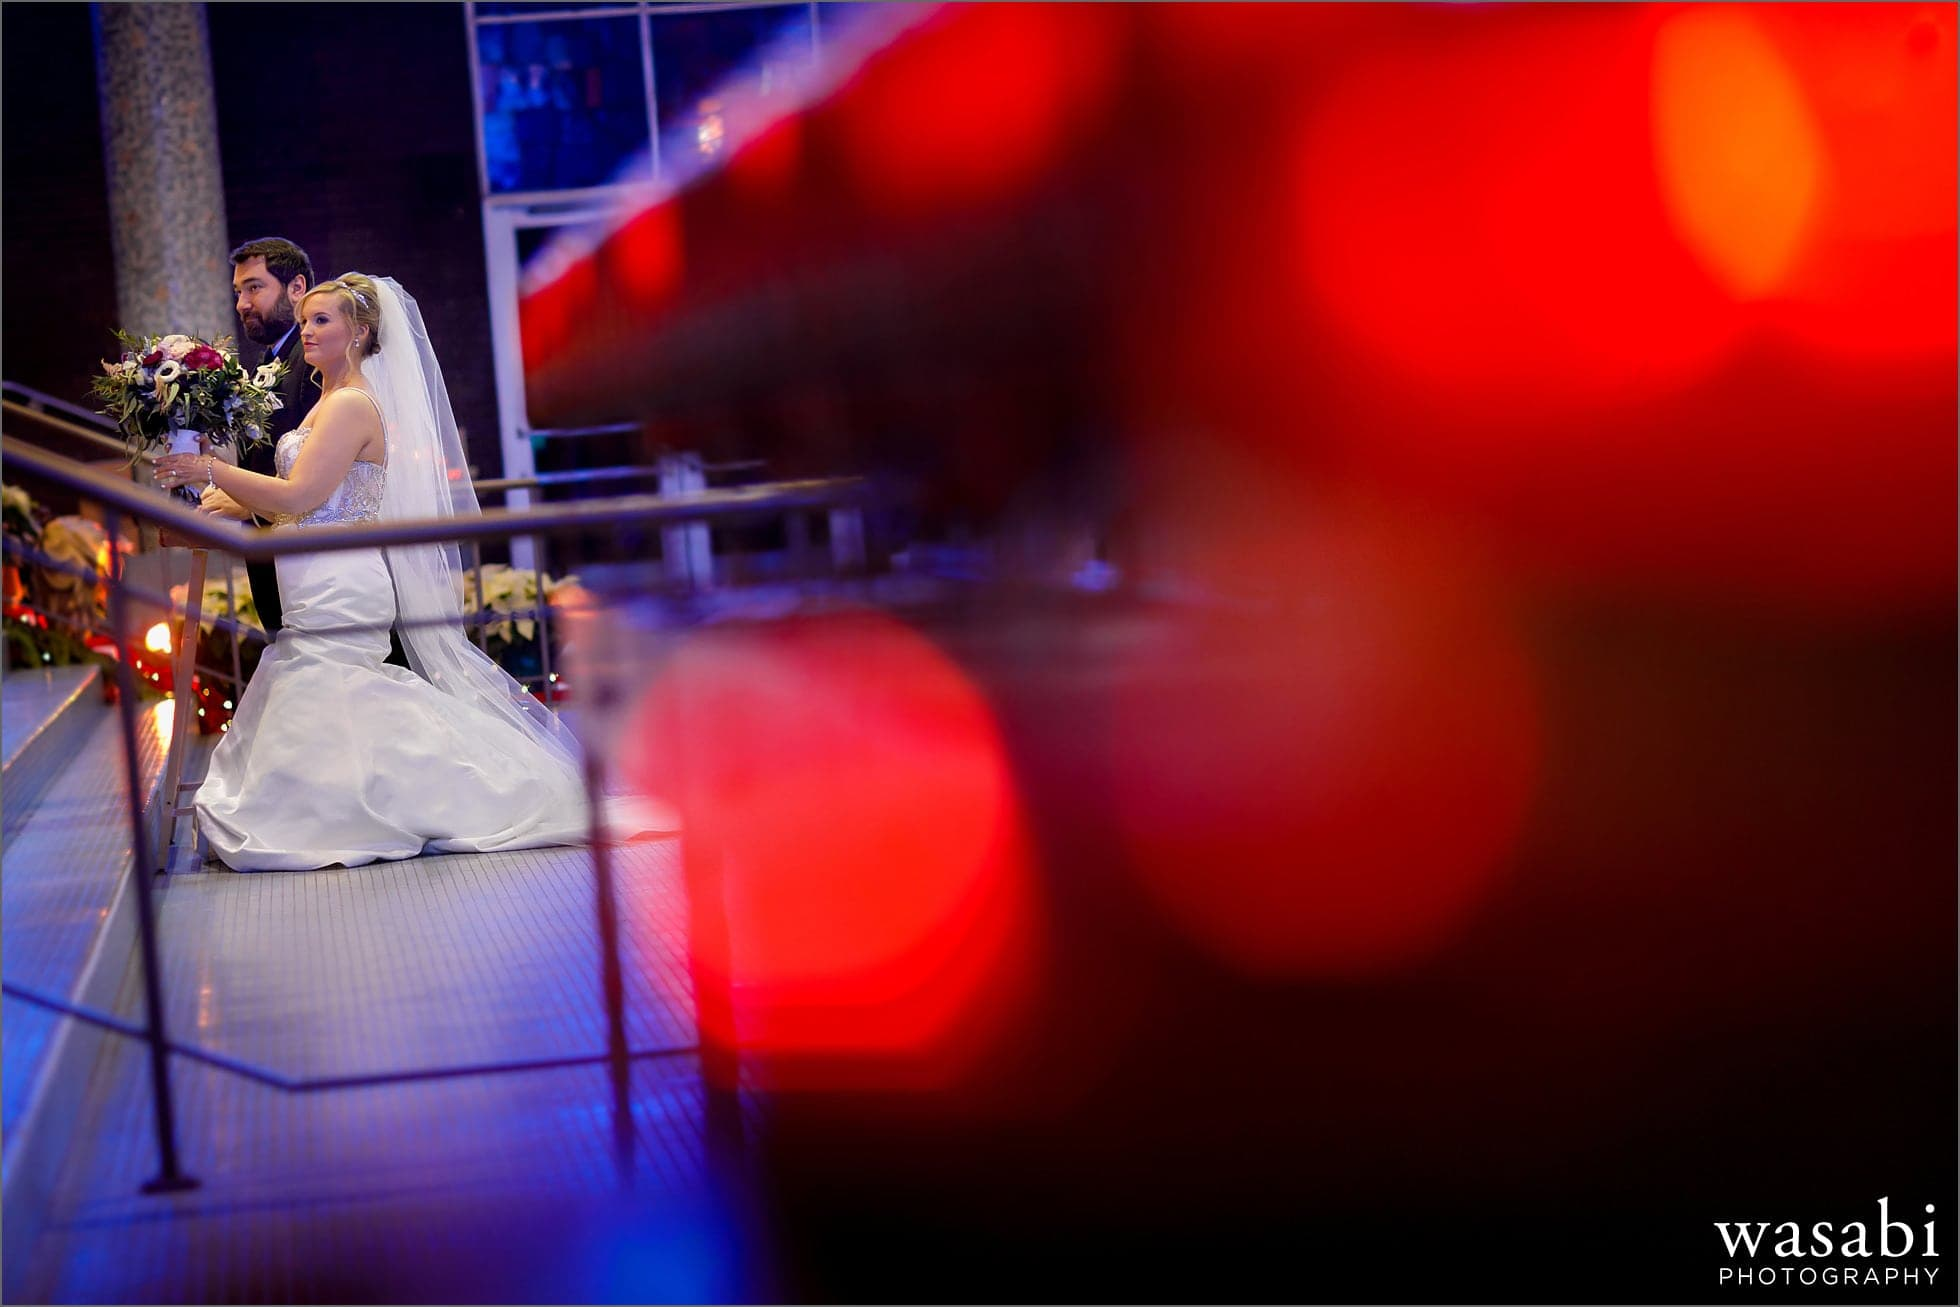 bride and groom kneel at the alter during wedding ceremony at Immaculate Conception Catholic Church in Chicago